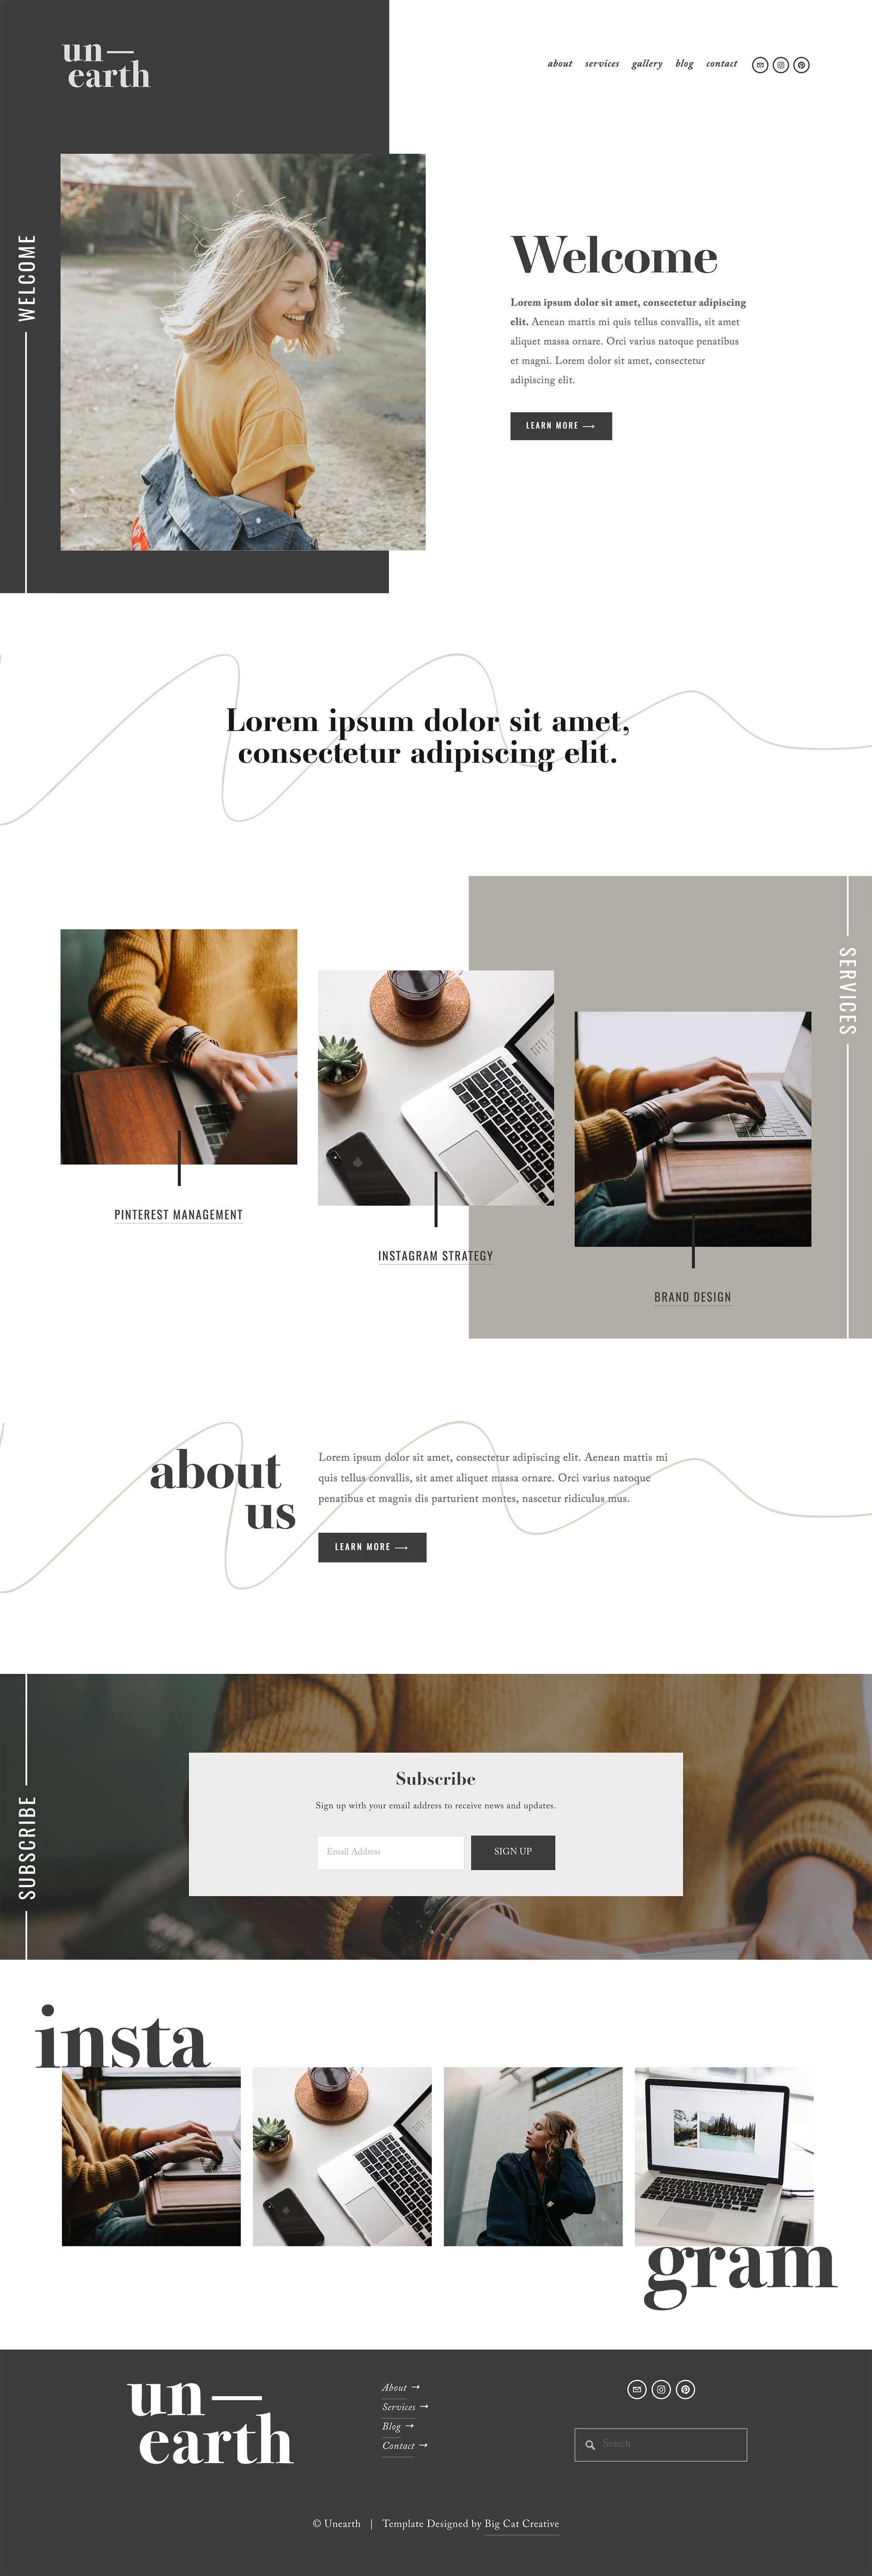 Squarespace Template Unearth In 2020 Web Design Quotes Web Design Tips Squarespace Design